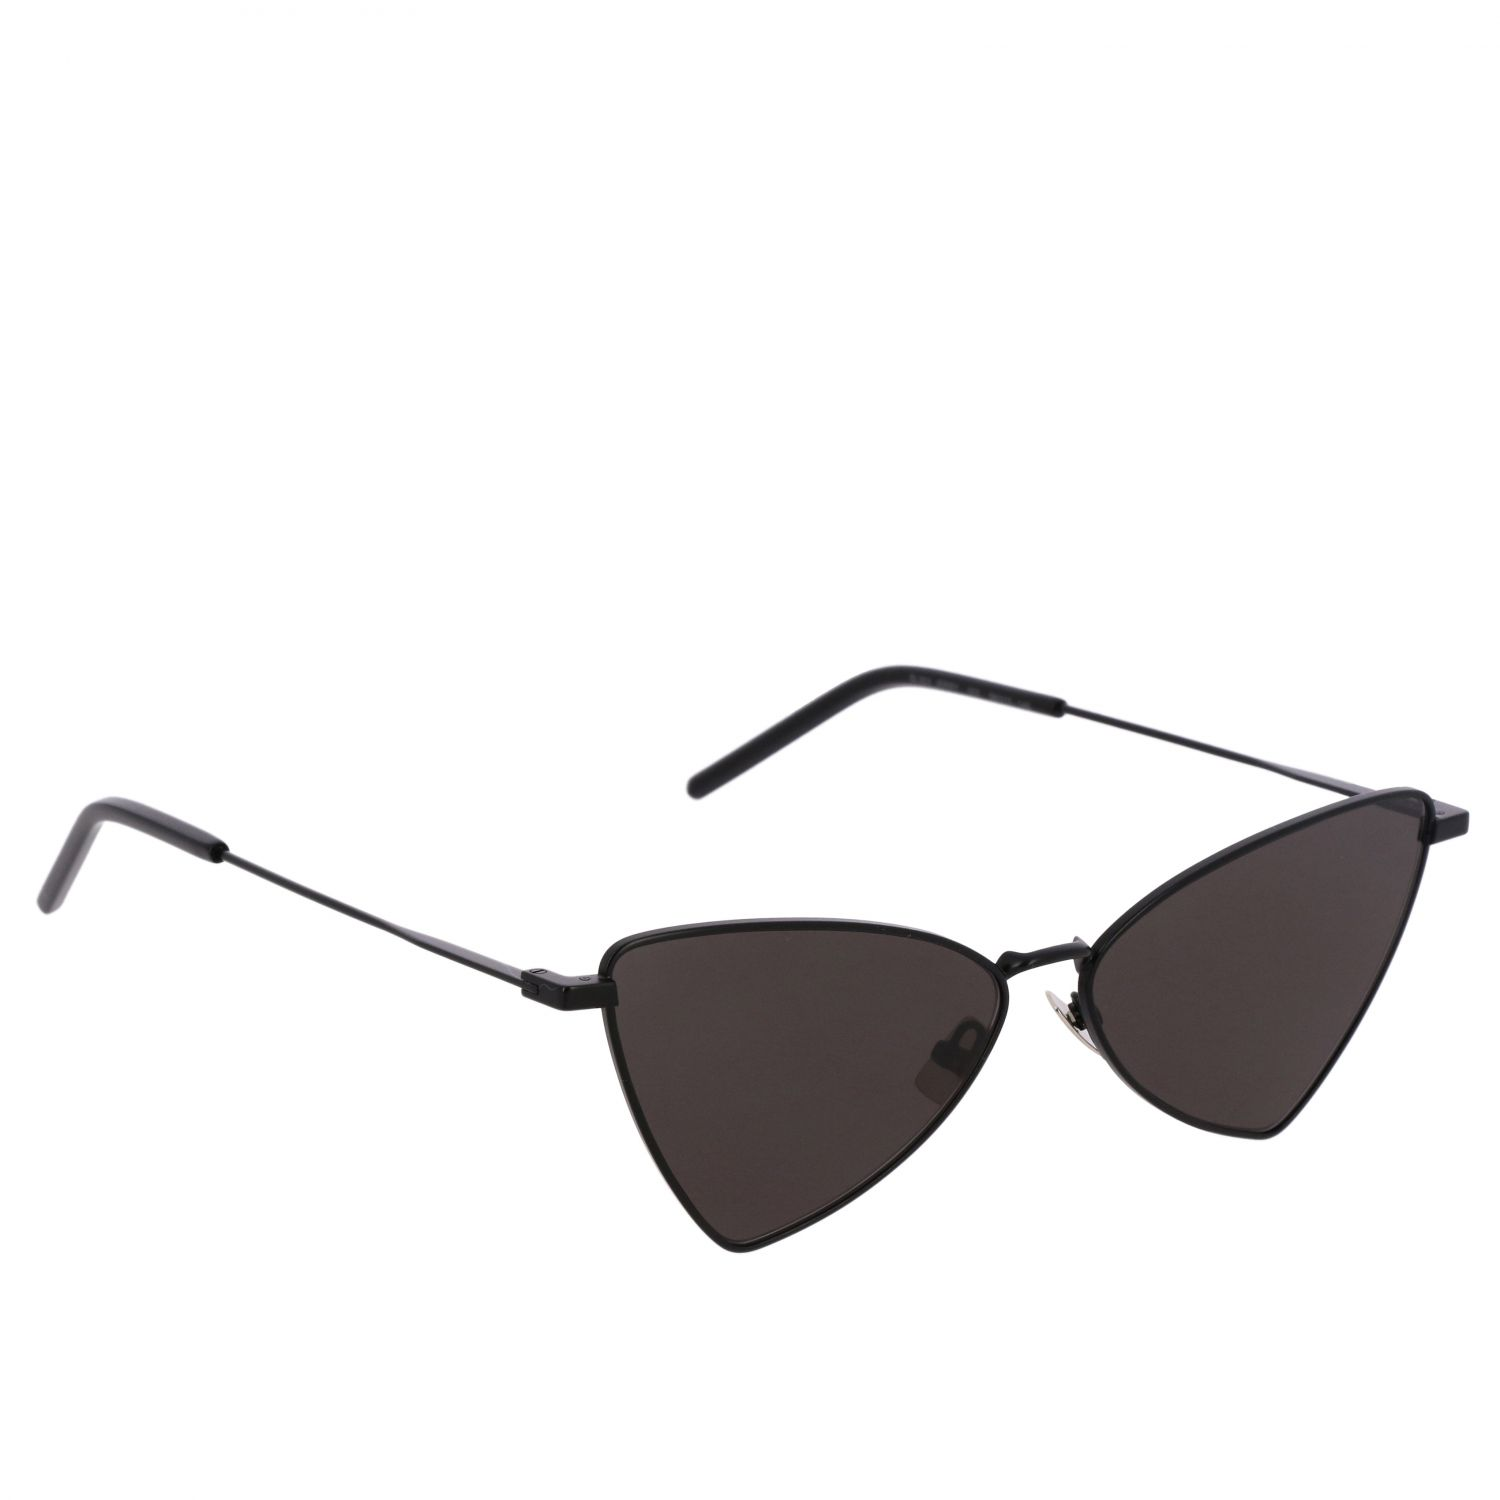 Brille Saint Laurent: JERRY Saint Laurent Sonnenbrille in Metall Brücke 13 Auktion 145 schwarz 1